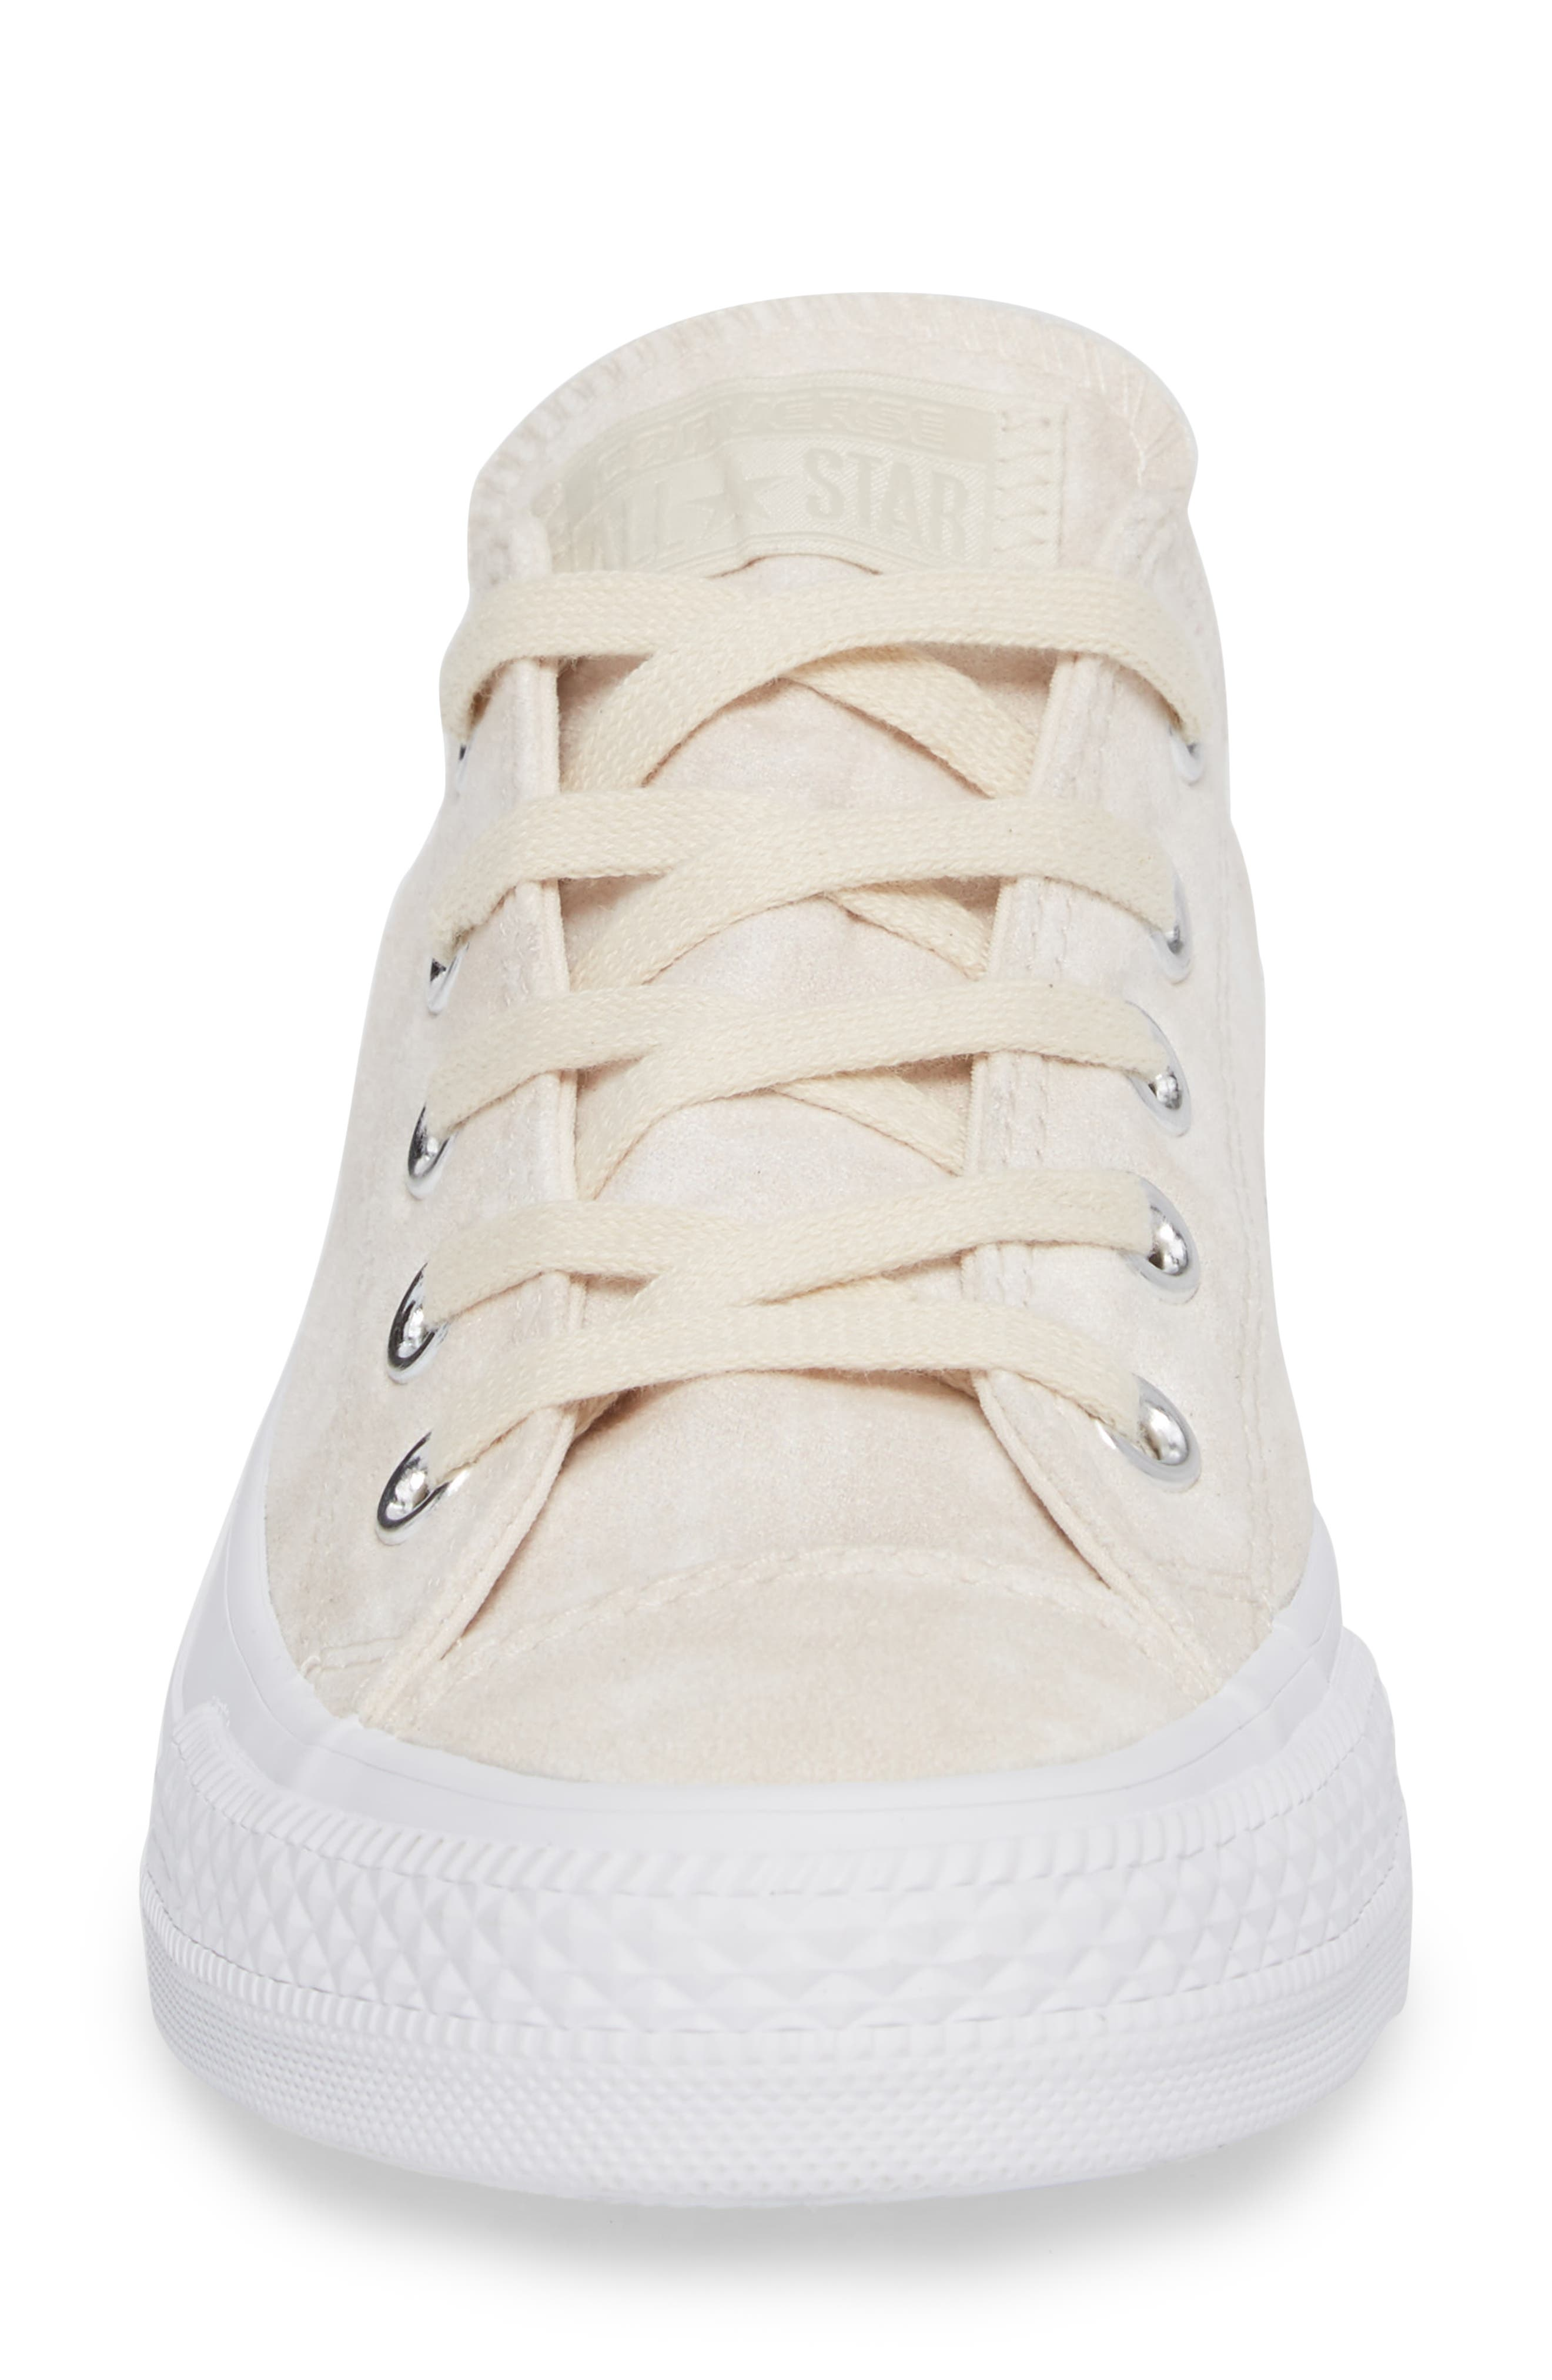 Chuck Taylor<sup>®</sup> All Star<sup>®</sup> Peached Low Top Sneaker,                             Alternate thumbnail 4, color,                             248